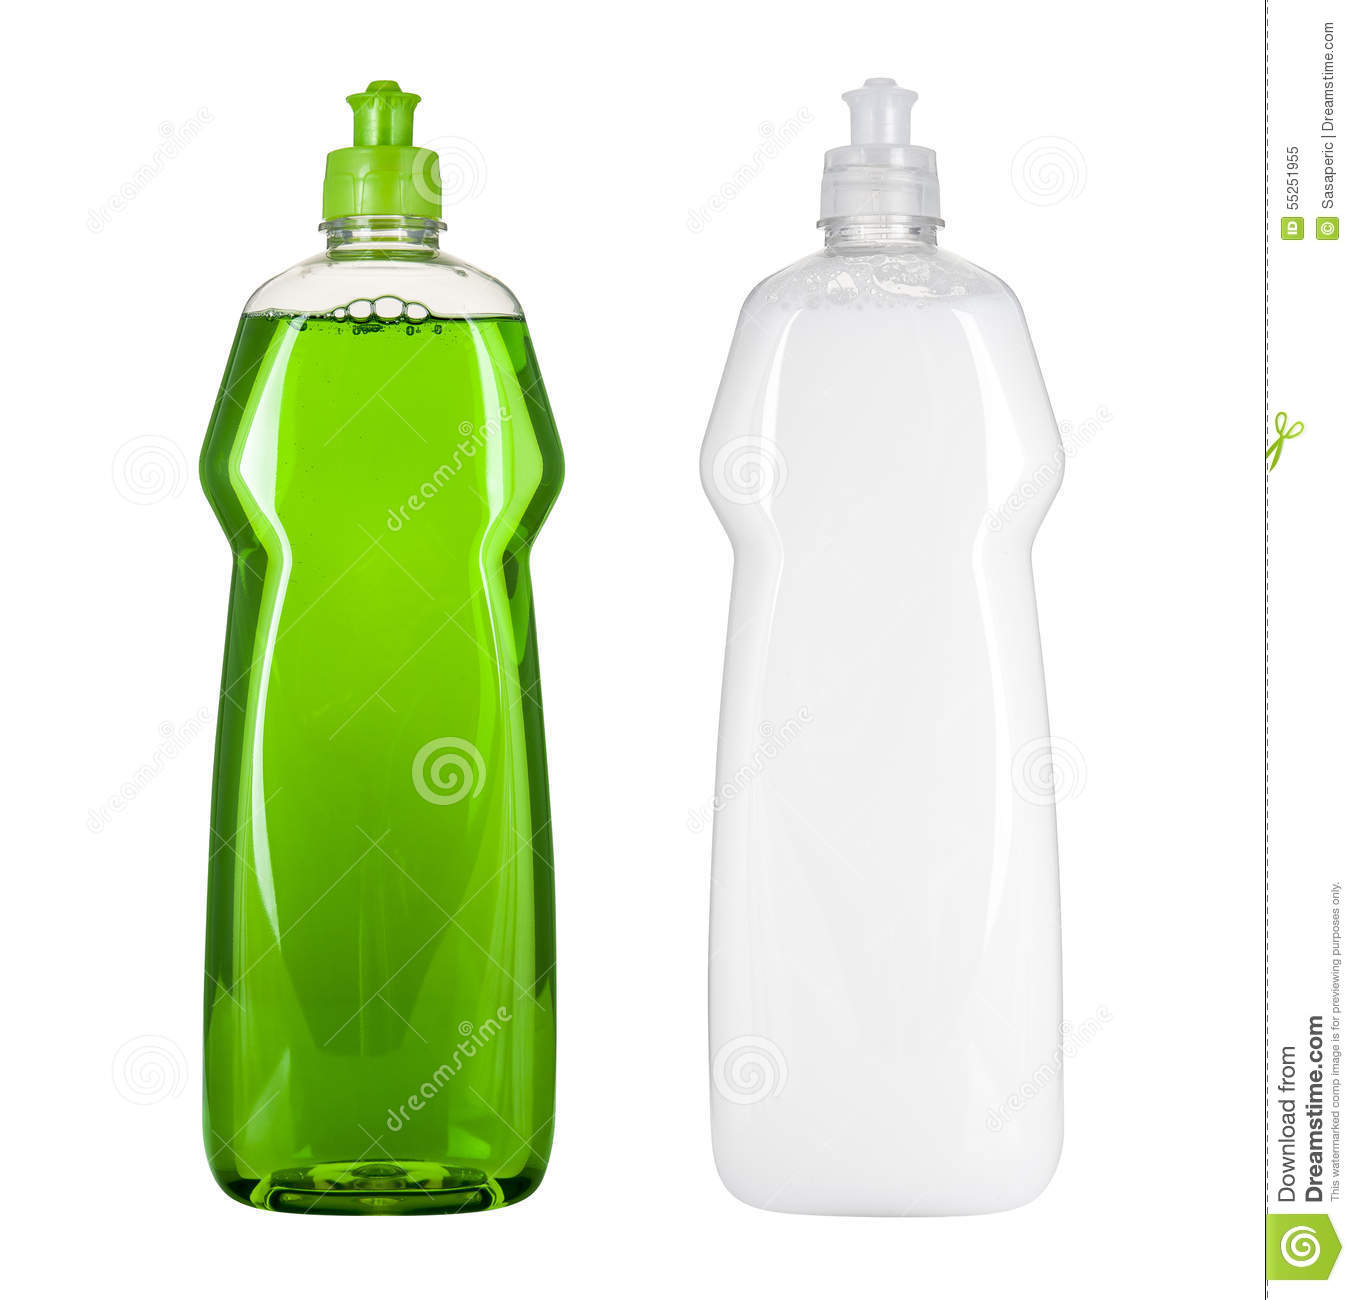 liquid template filters - blank package container dummy collection bottle template